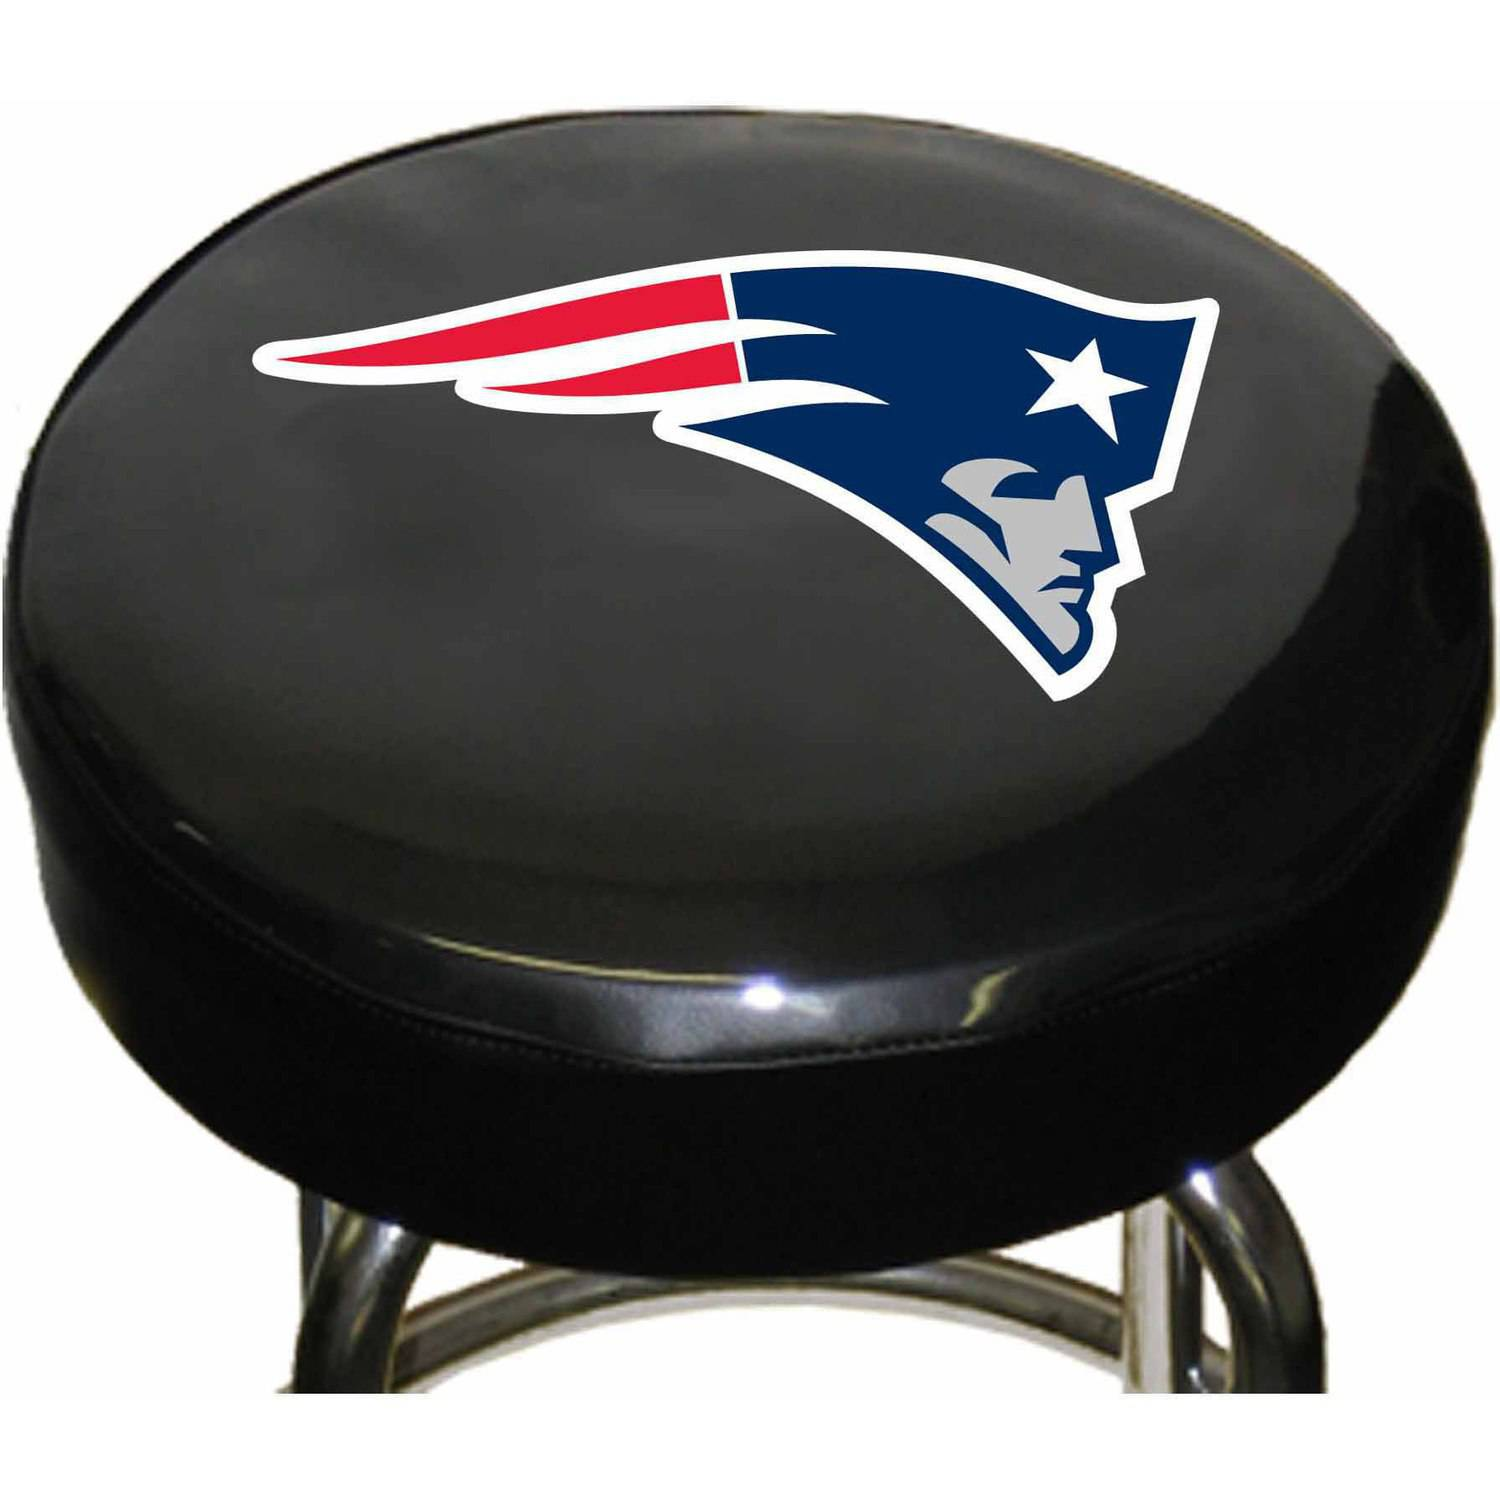 Nfl New Orleans Saints Bar Stool Cover Walmart Com